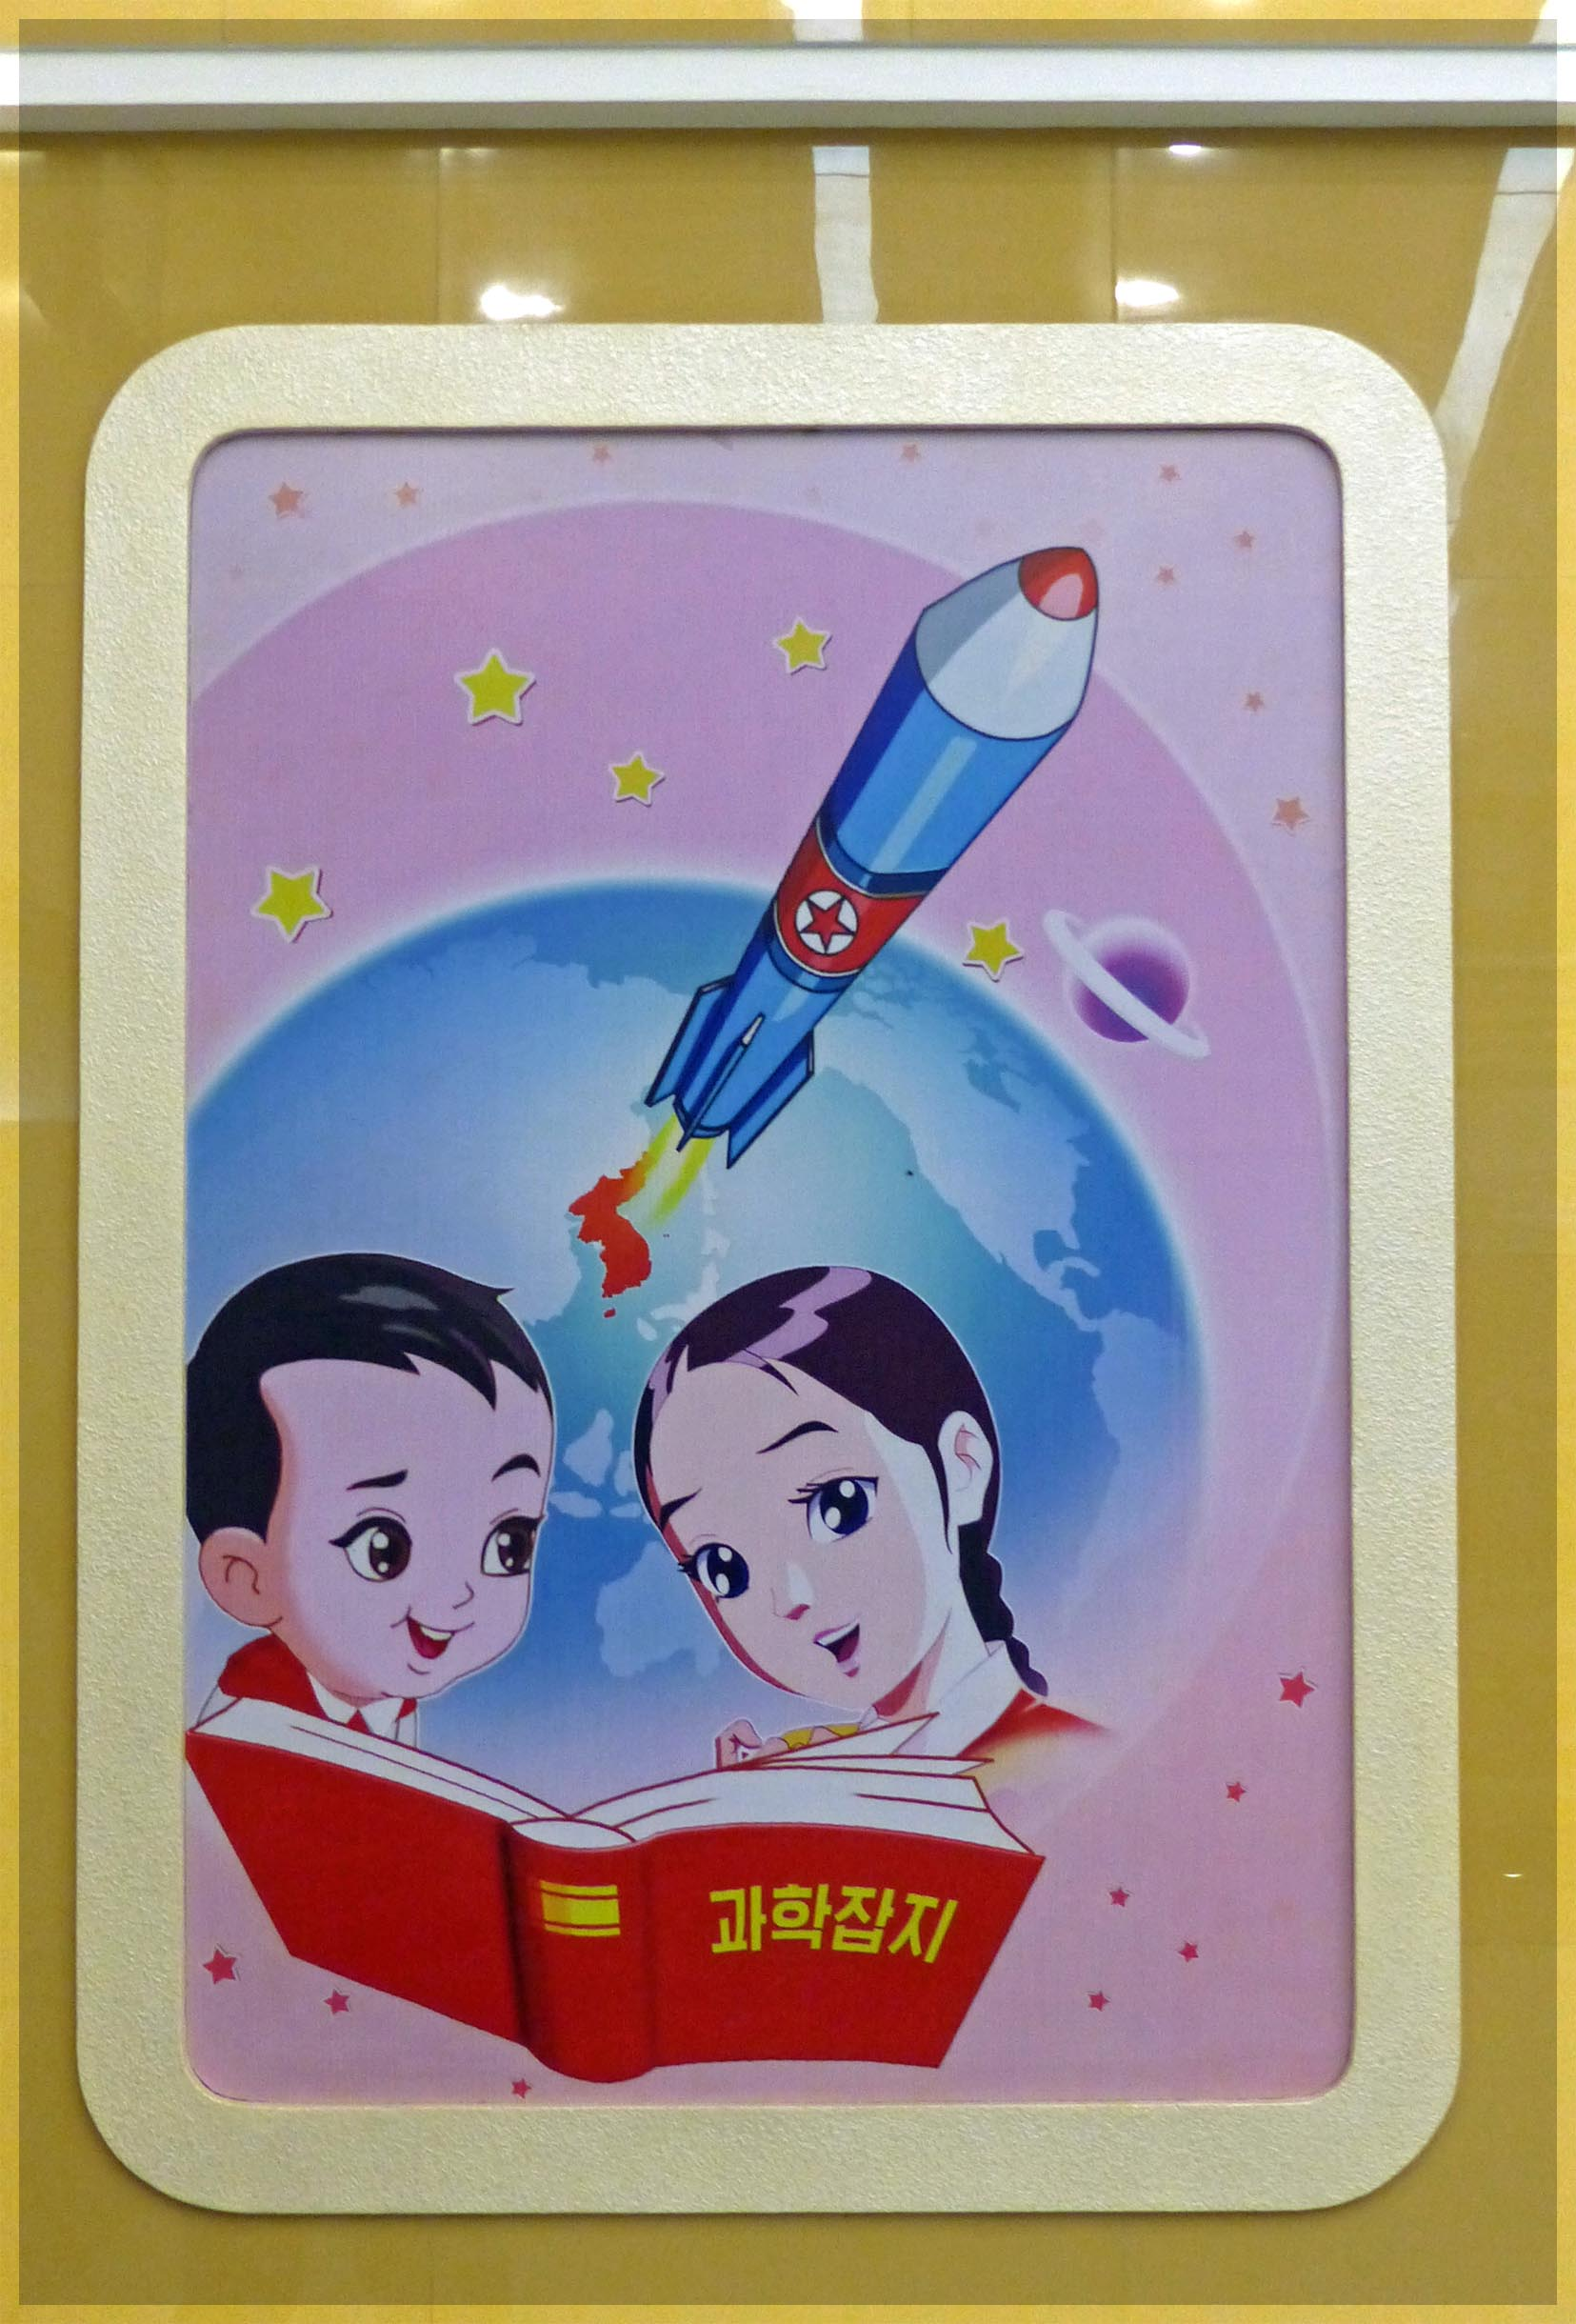 Poster of two children with a rocket